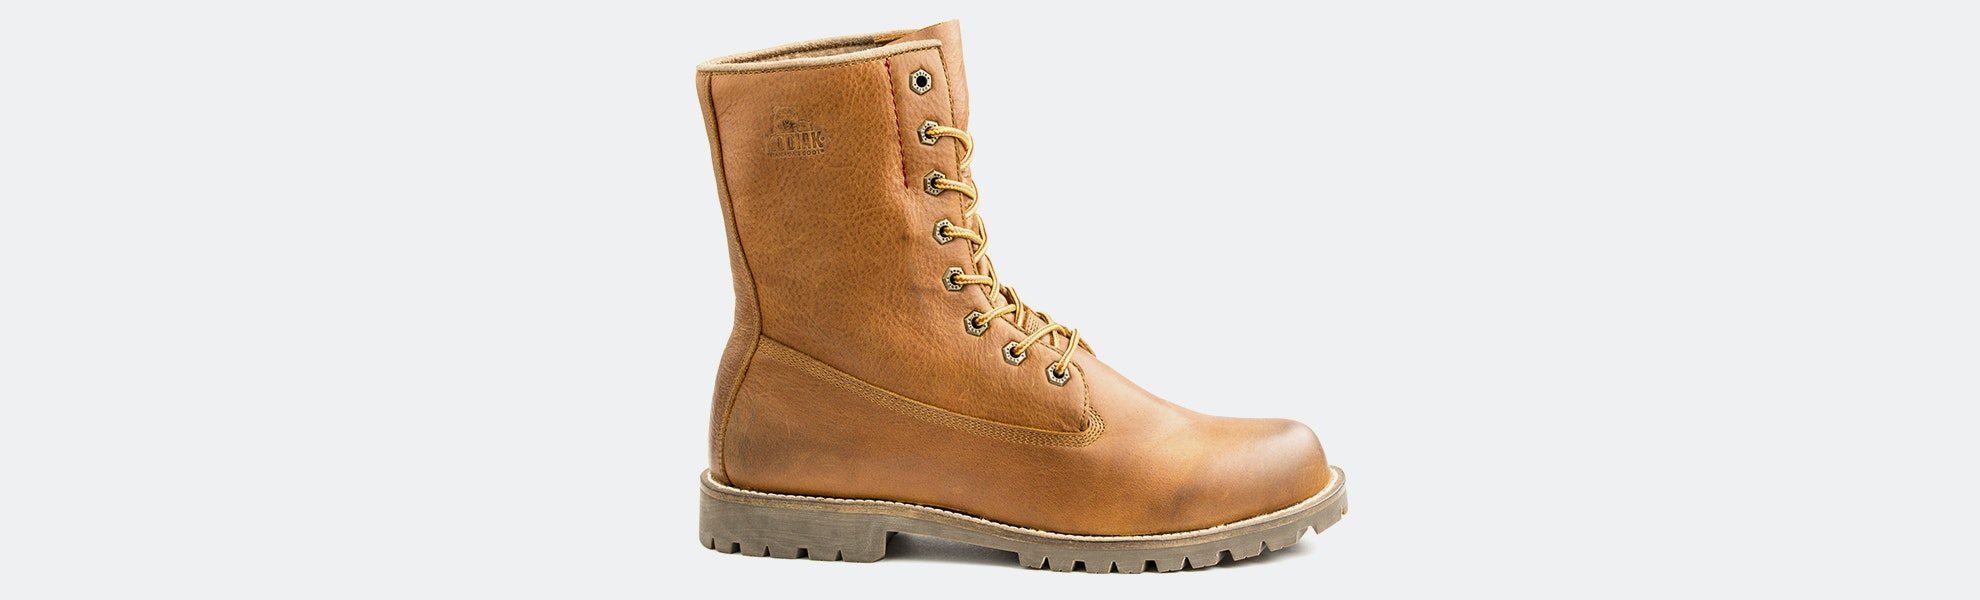 Kodiak Men's Heritage Boots